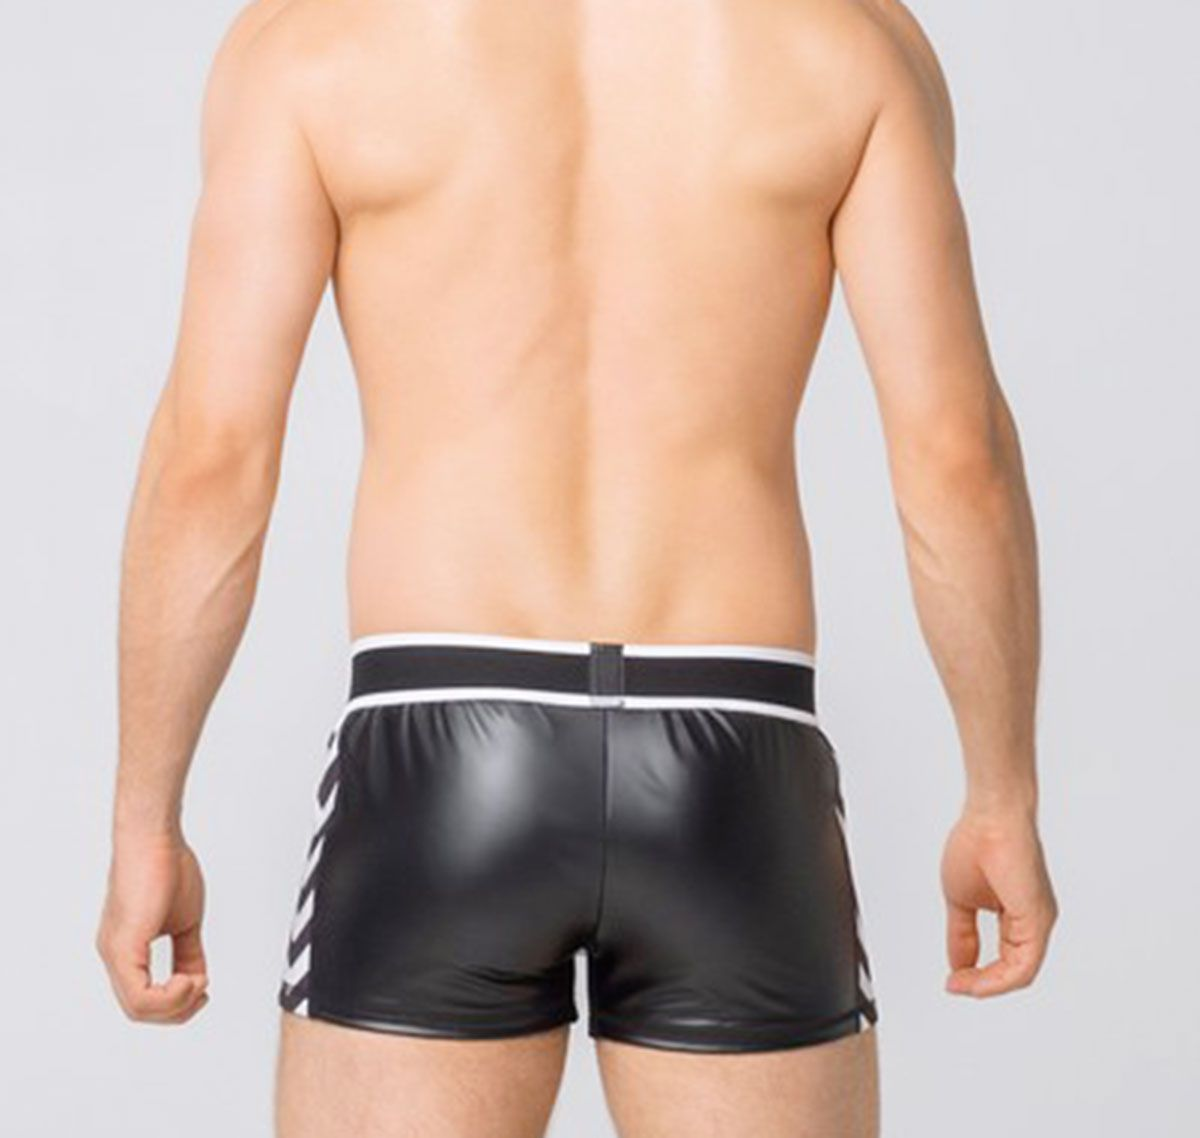 MASKULO Pantaloncini corti Fetish SKULLA MEN`S FETISH LEATHERETTE SHORTS. SH075-80, bianco